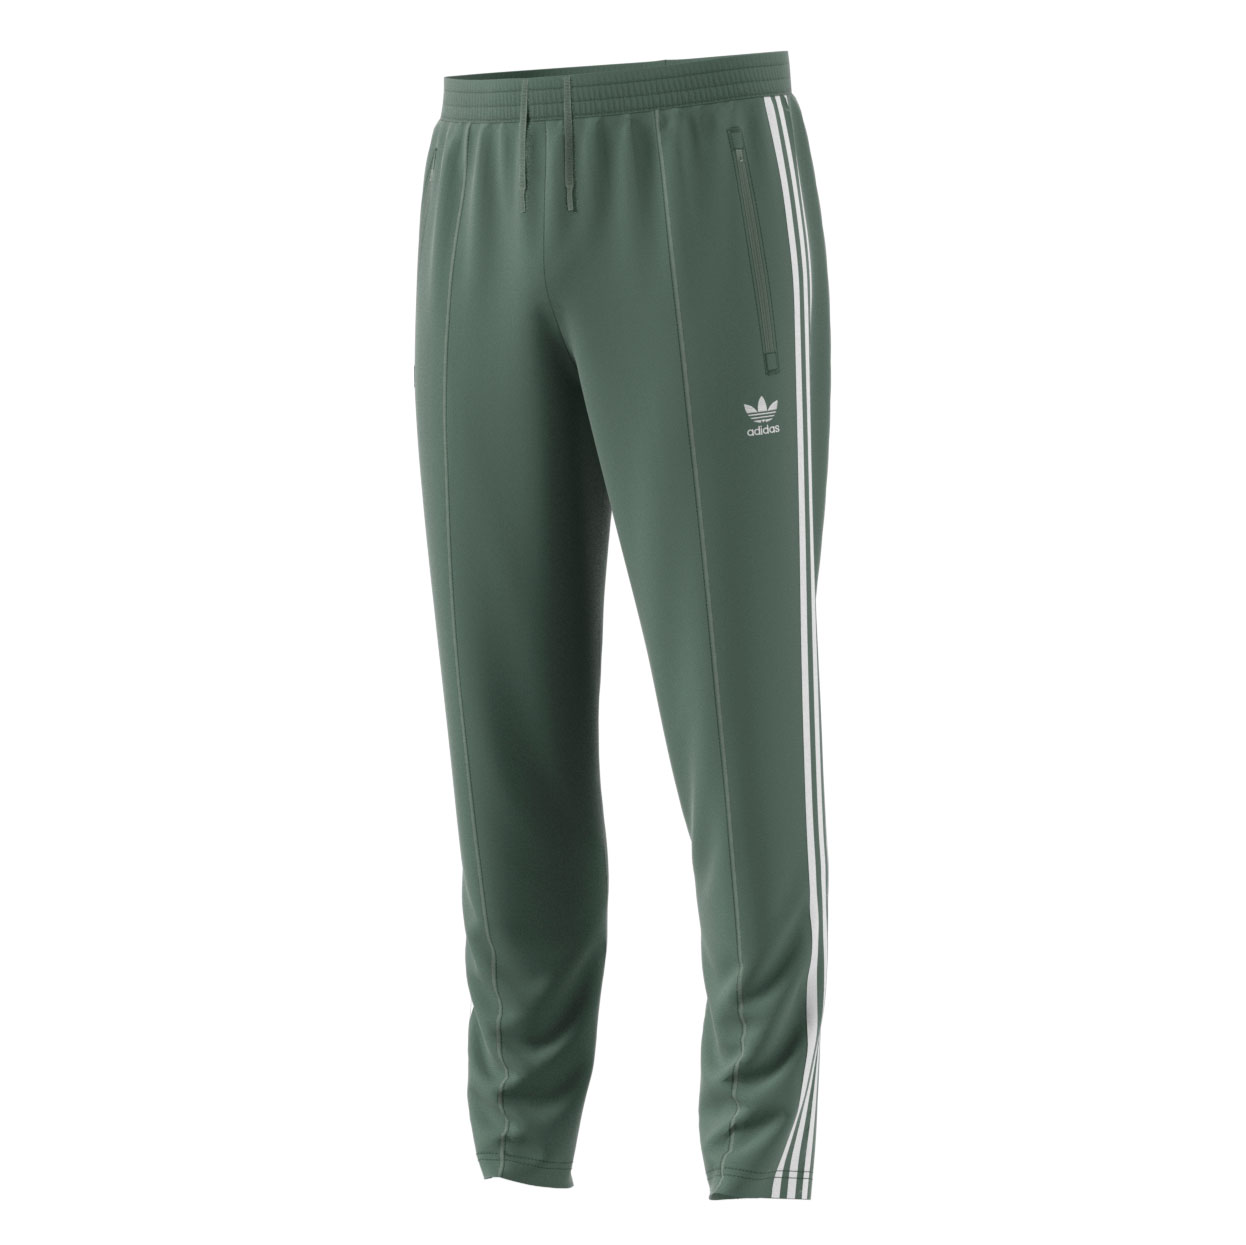 new styles d9e4b 5a04c Details about Adidas Originals Beckenbauer Mens Athletic Track Pants Trace  GreenWhite dh5818